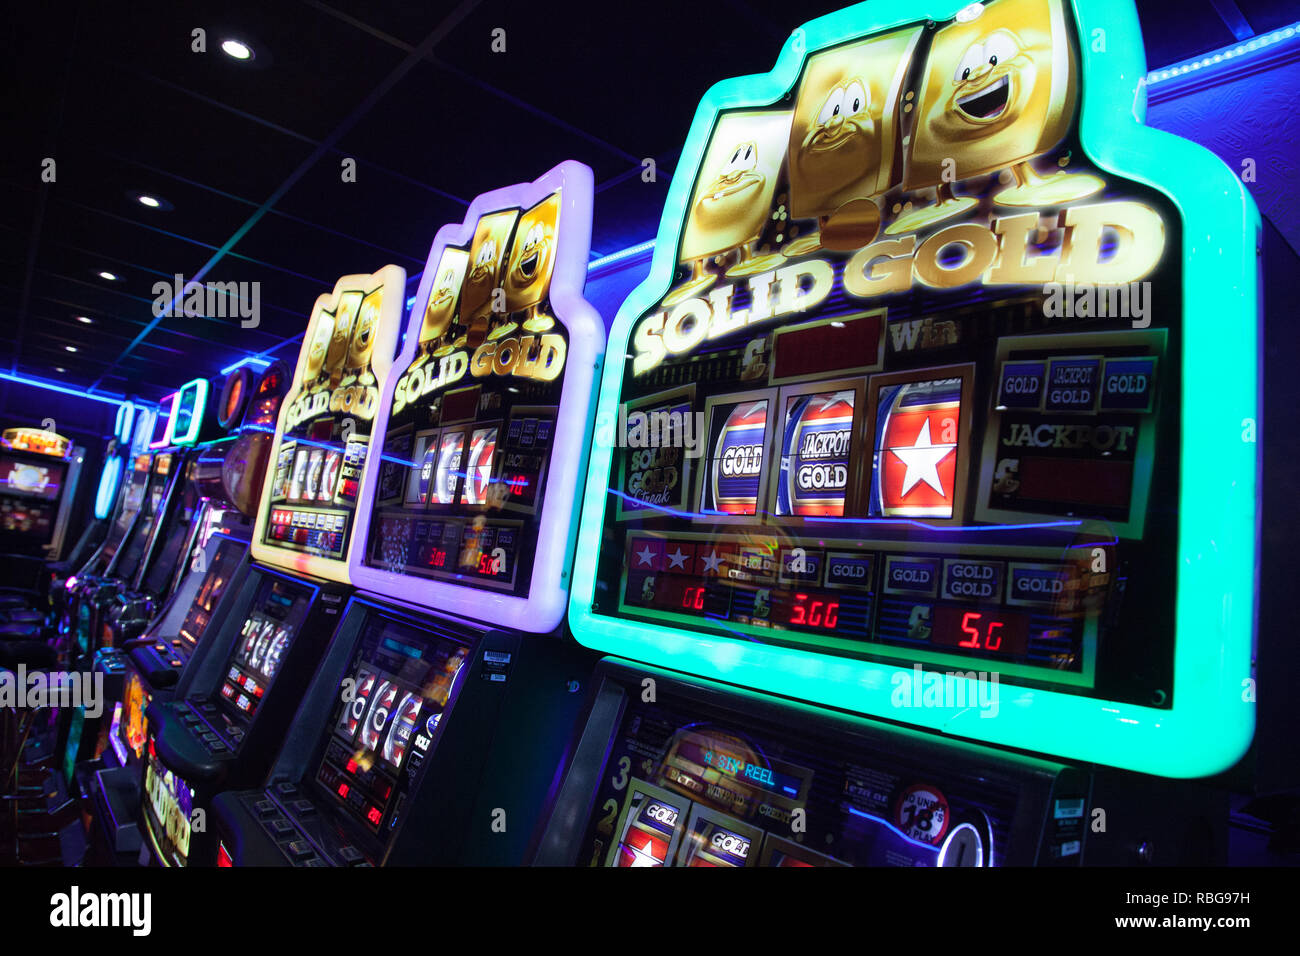 Fixed odds betting terminals buy gold can you make money betting on sports